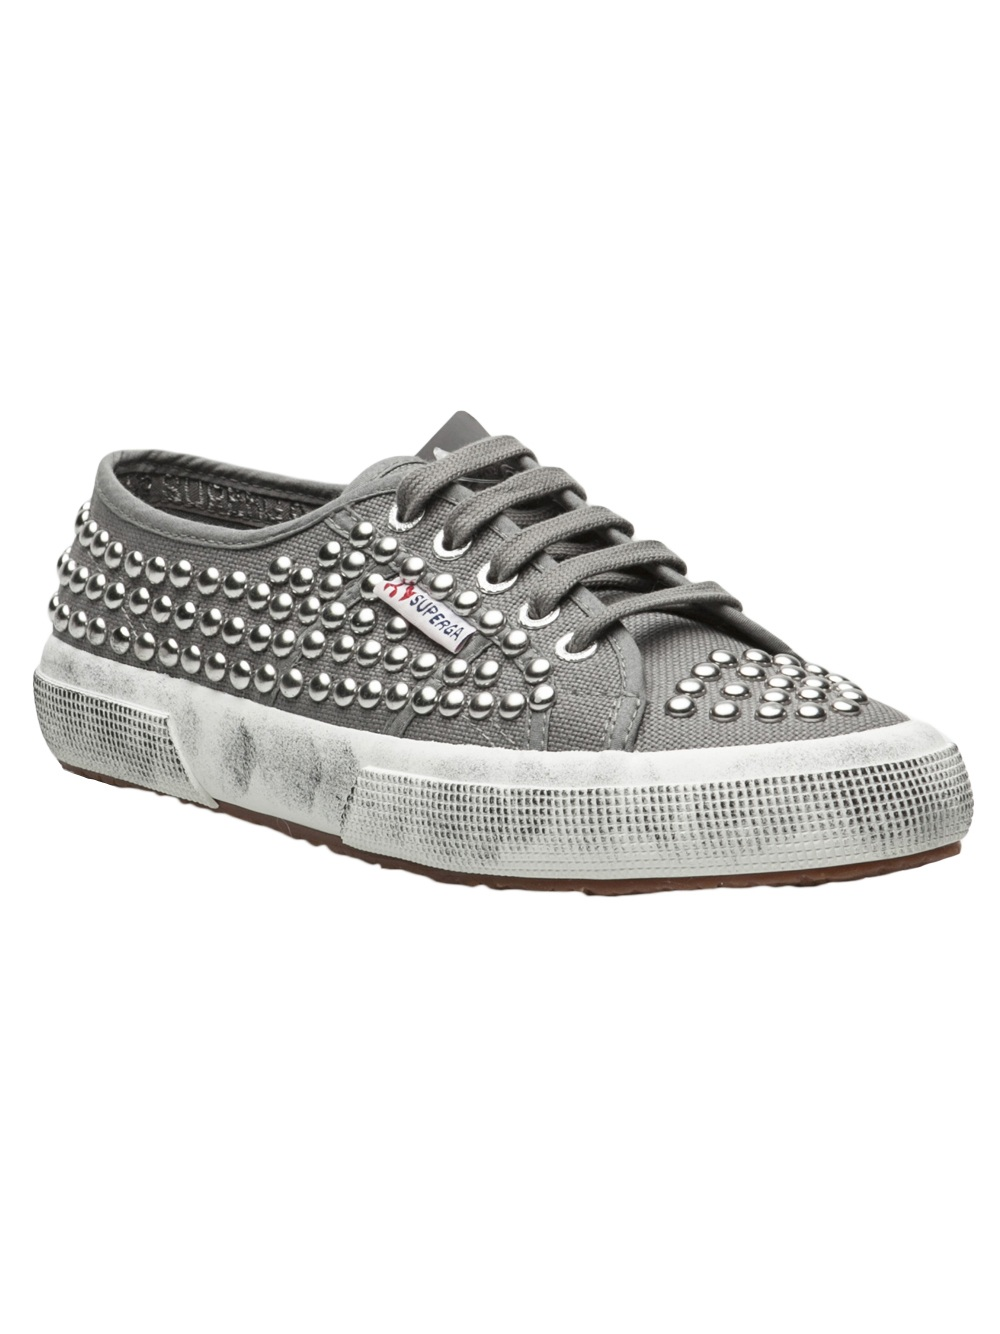 f12d7015cafb Superga Cotu Studded Sneaker in Gray - Lyst